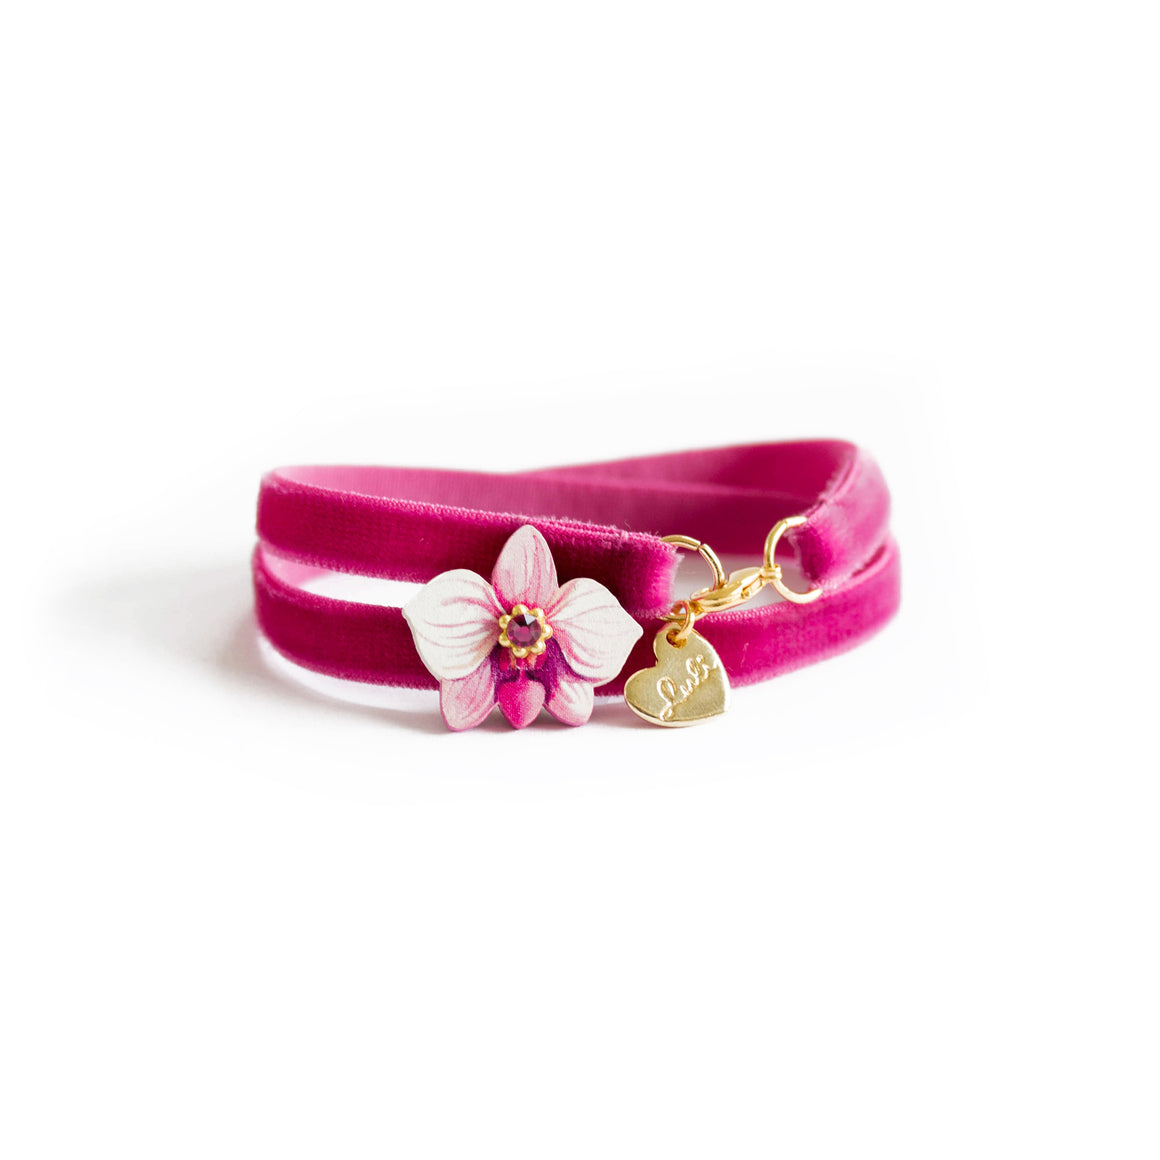 FLOWER VELVET - 2 in 1 <br /> Orchidea Fucsia - Luli Art Bijoux